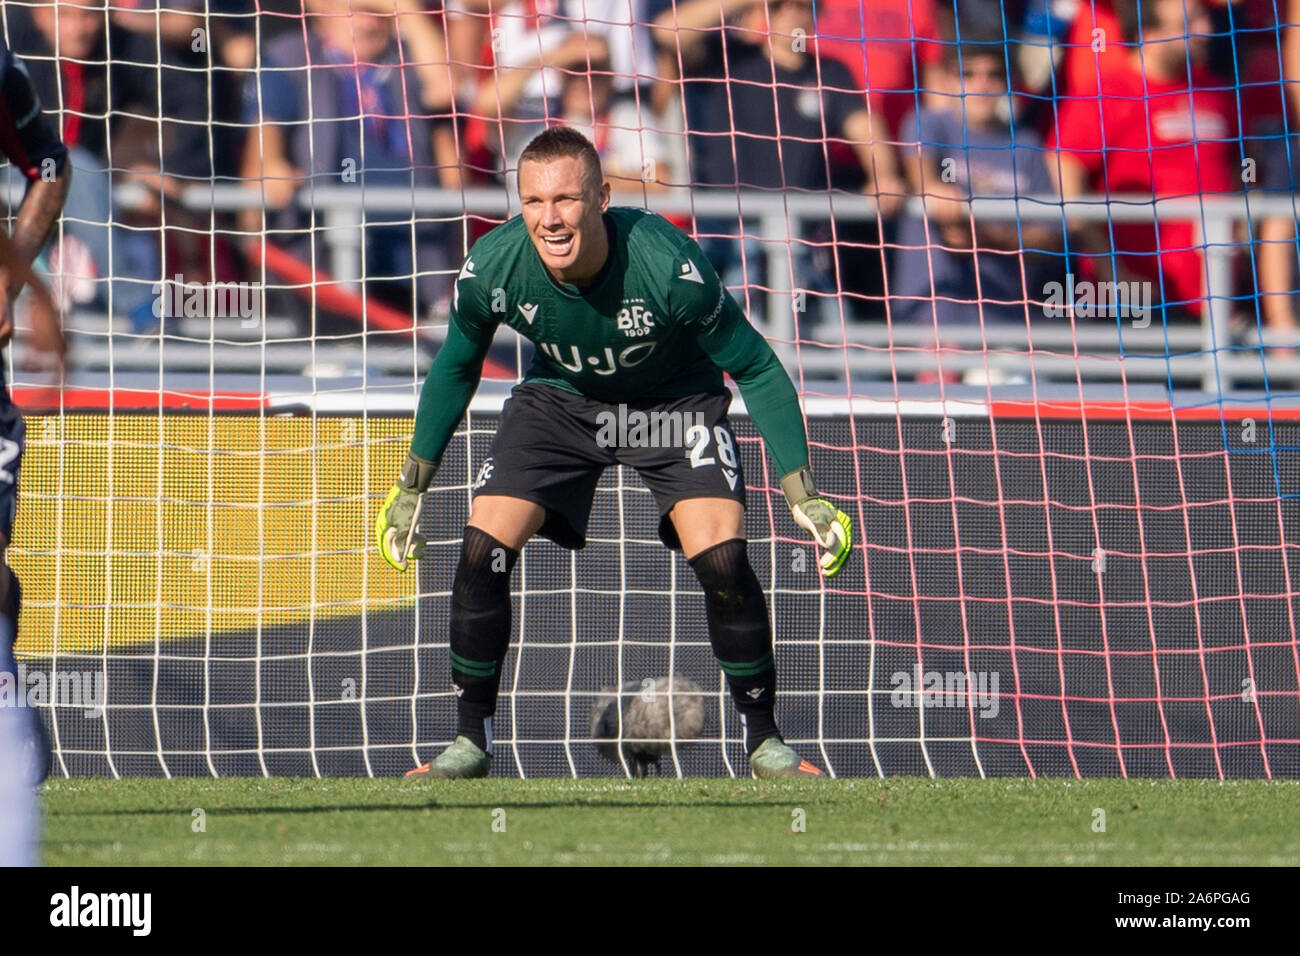 "Bologna, Italy. 27th Oct, 2019. Lukasz Skorupski (Bologna) during the Italian ""Serie A"" match between Bologna 2-1 Sampdoria at Renato Dall Ara Stadium on October 27, 2019 in Bologna, Italy. Credit: Aflo Co. Ltd./Alamy Live News Stock Photo"